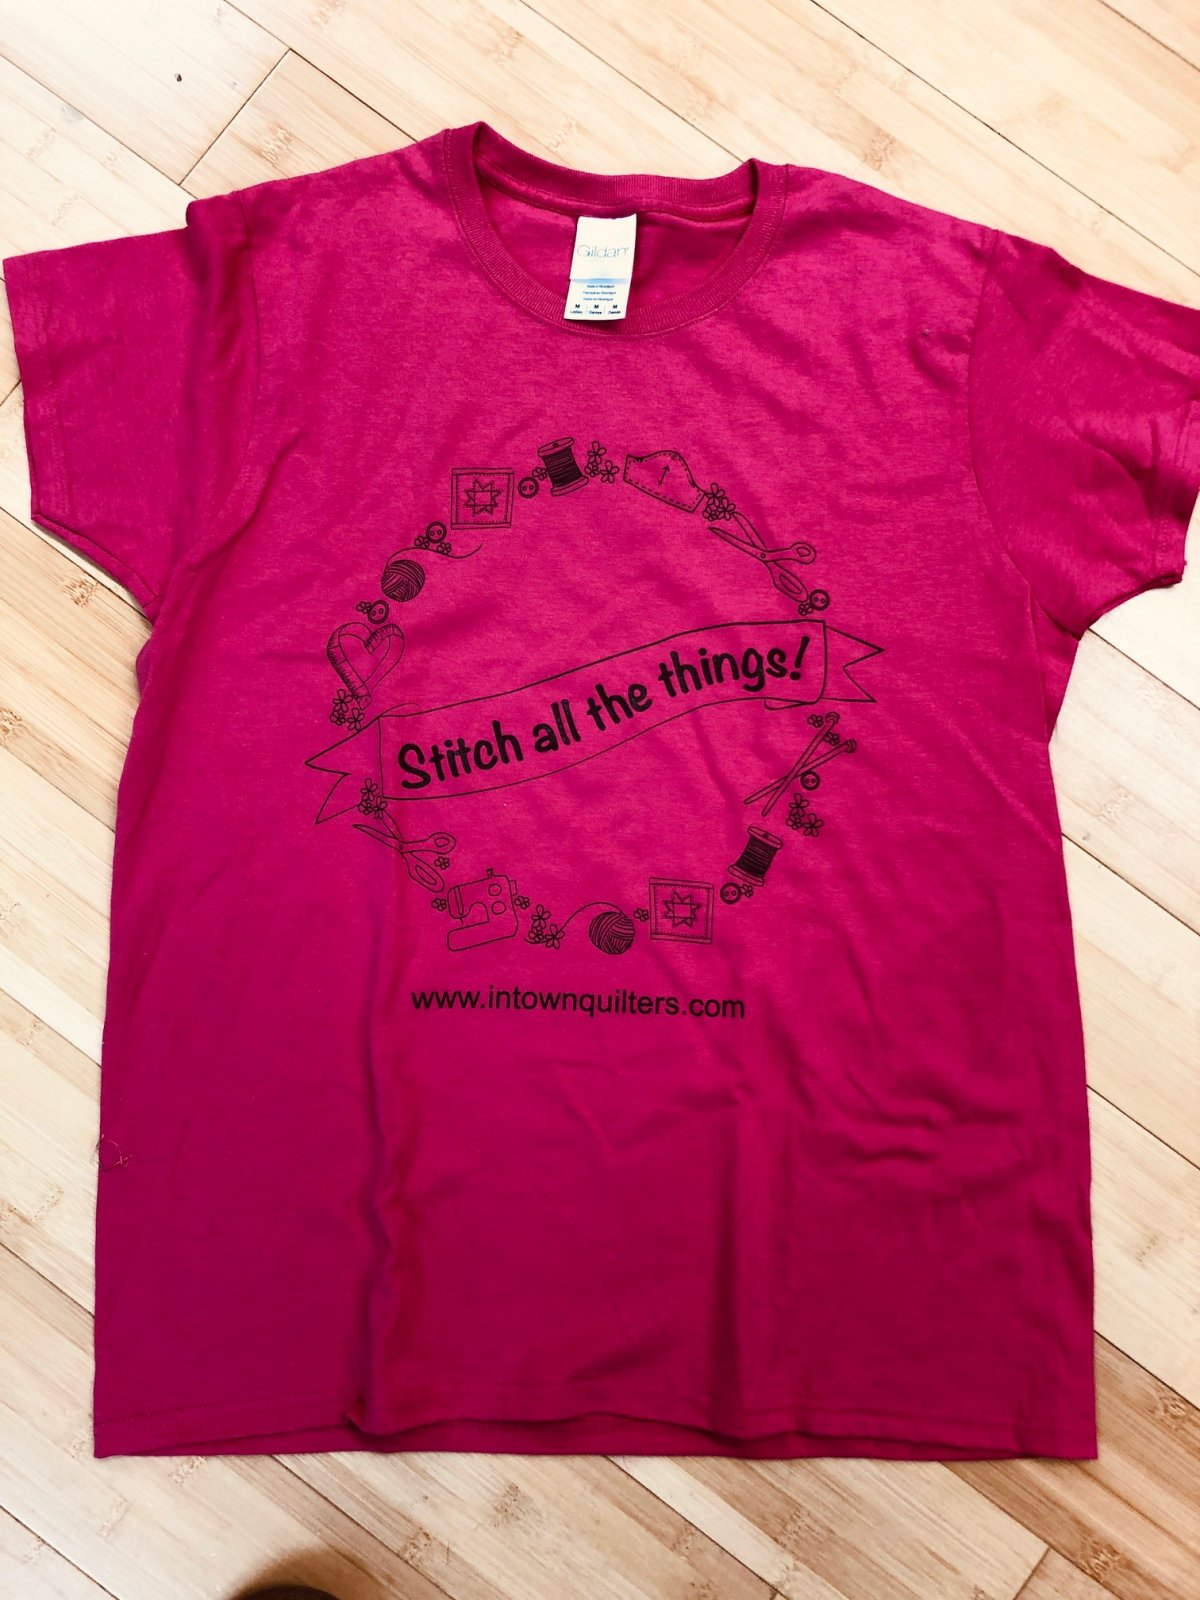 Black on Pink Stitch All the Things T-shirt